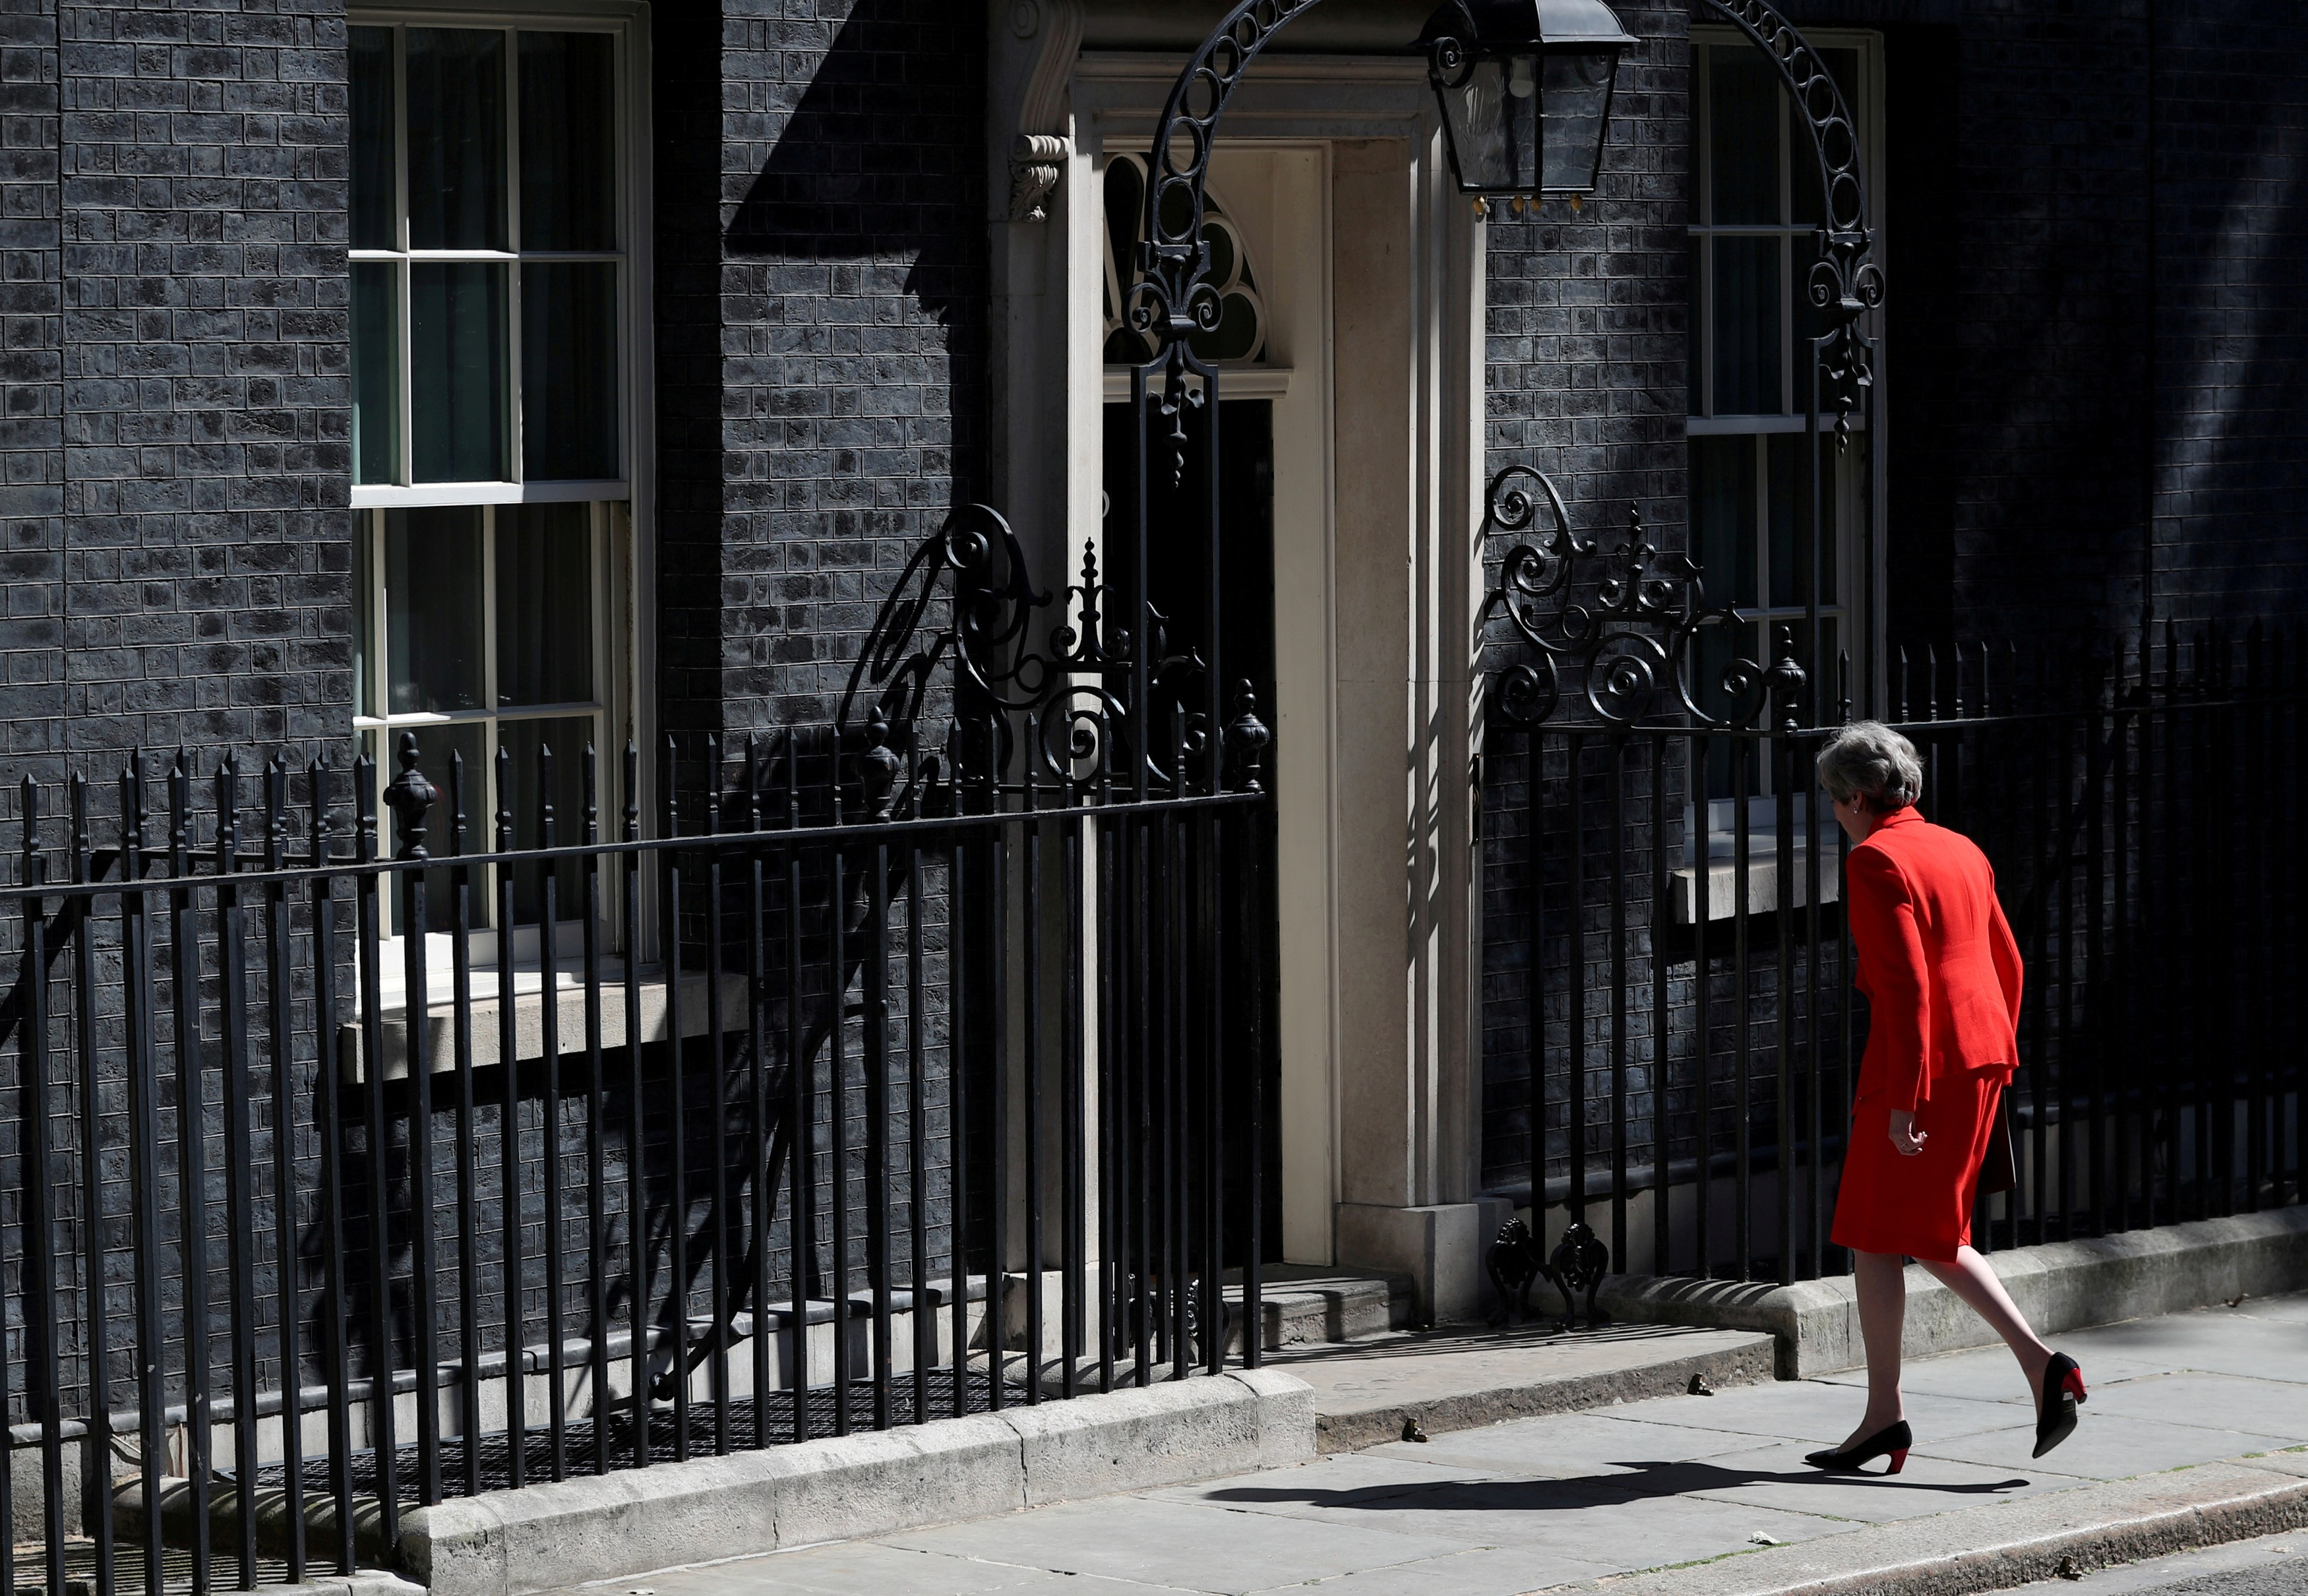 British Prime Minister Theresa May leaves after making a statement at Downing Street in London.